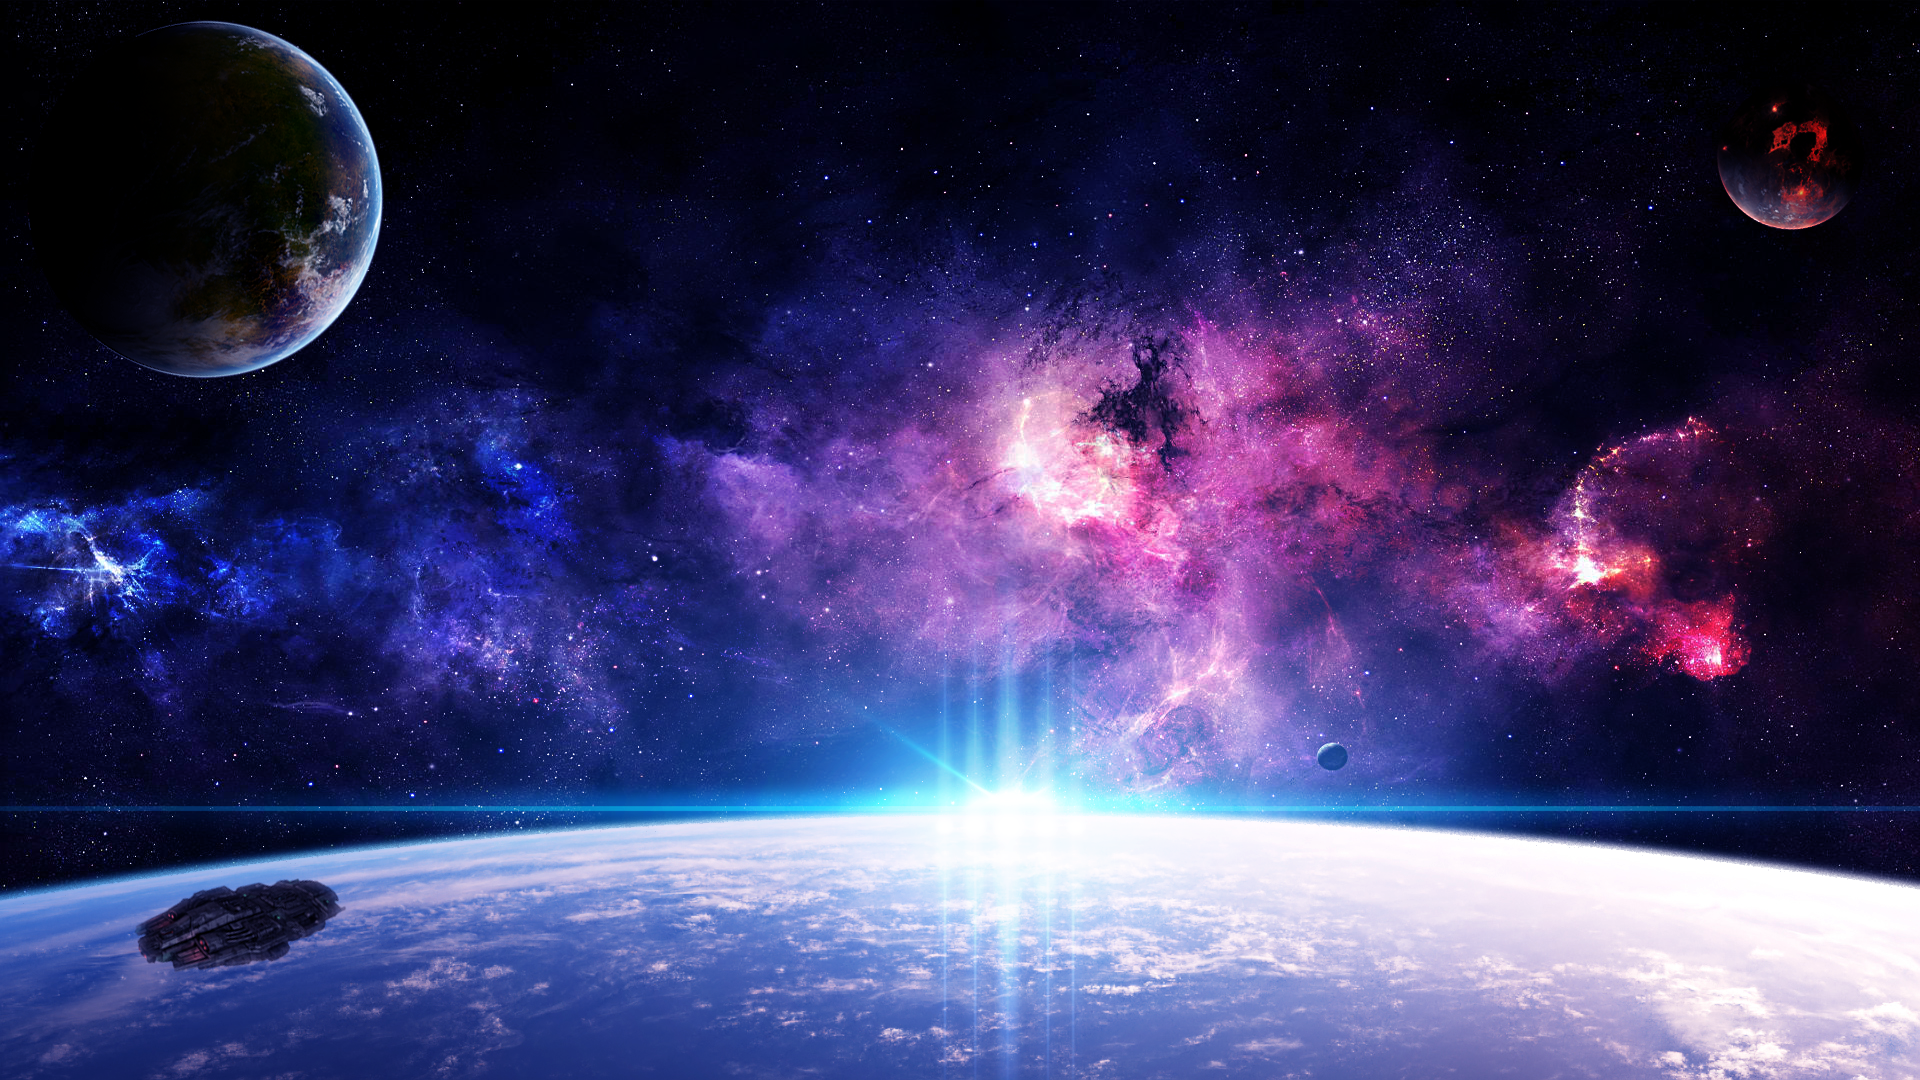 73] 1080p Space Wallpapers On Wallpaper 933333   PNG Images   PNGio 1920x1080